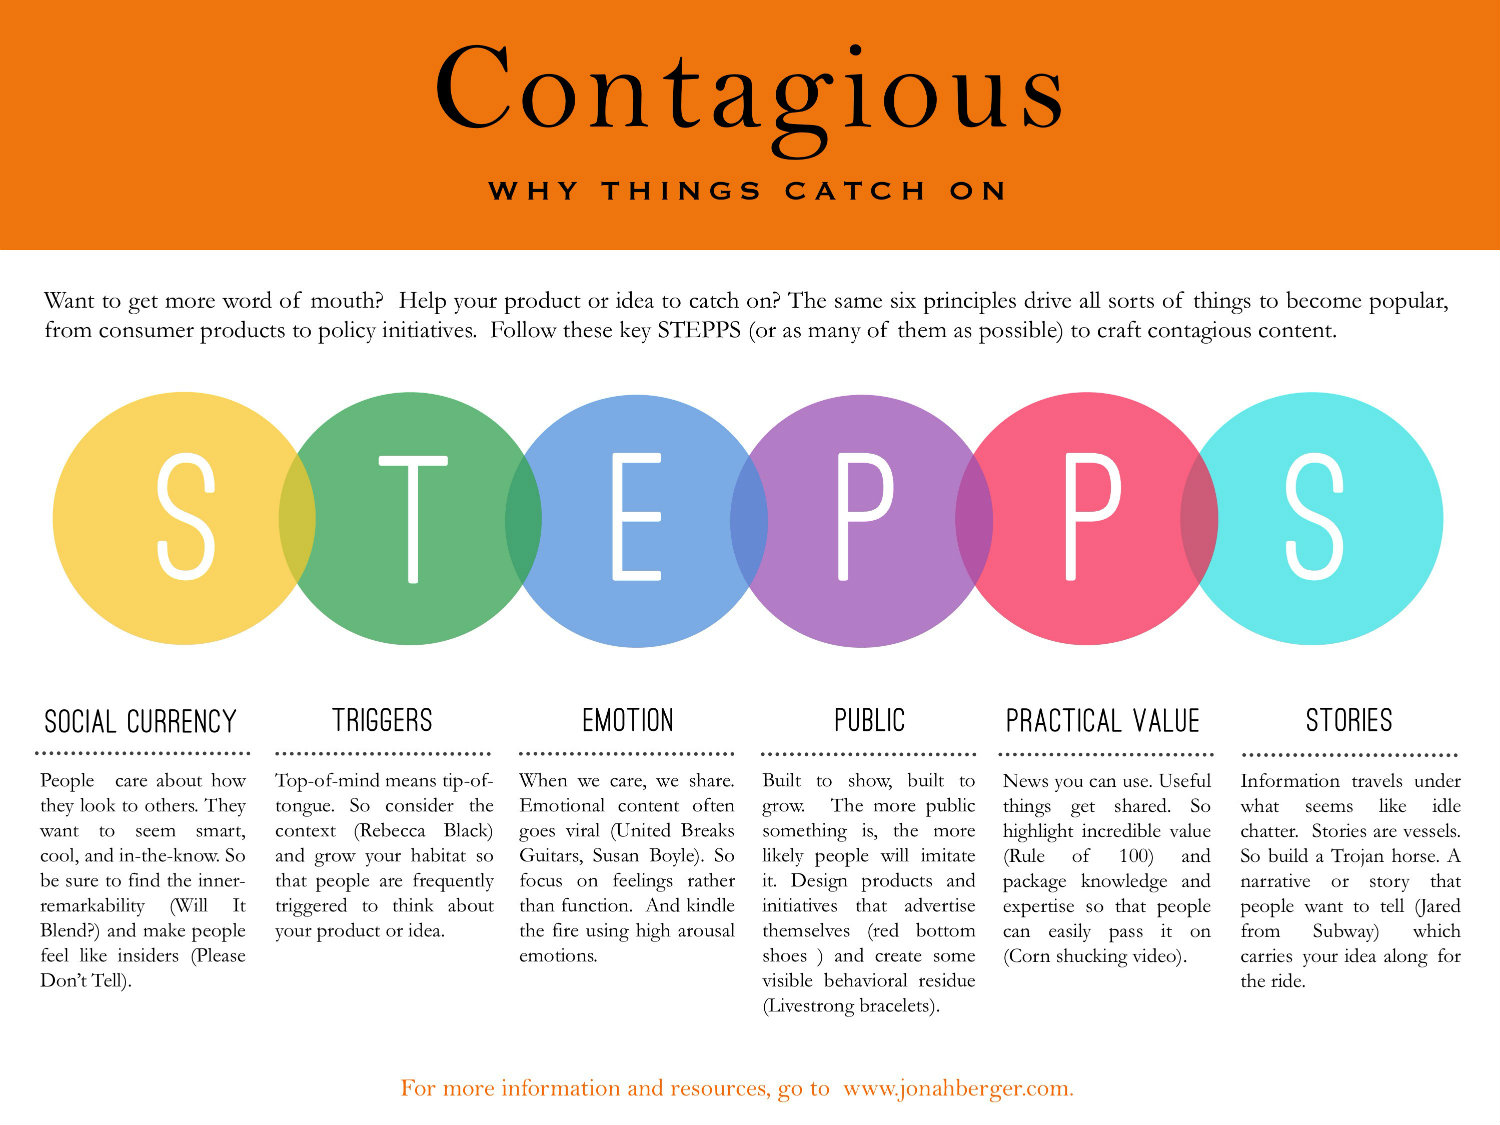 Contagious Framework STEPPS by Jonah Berger